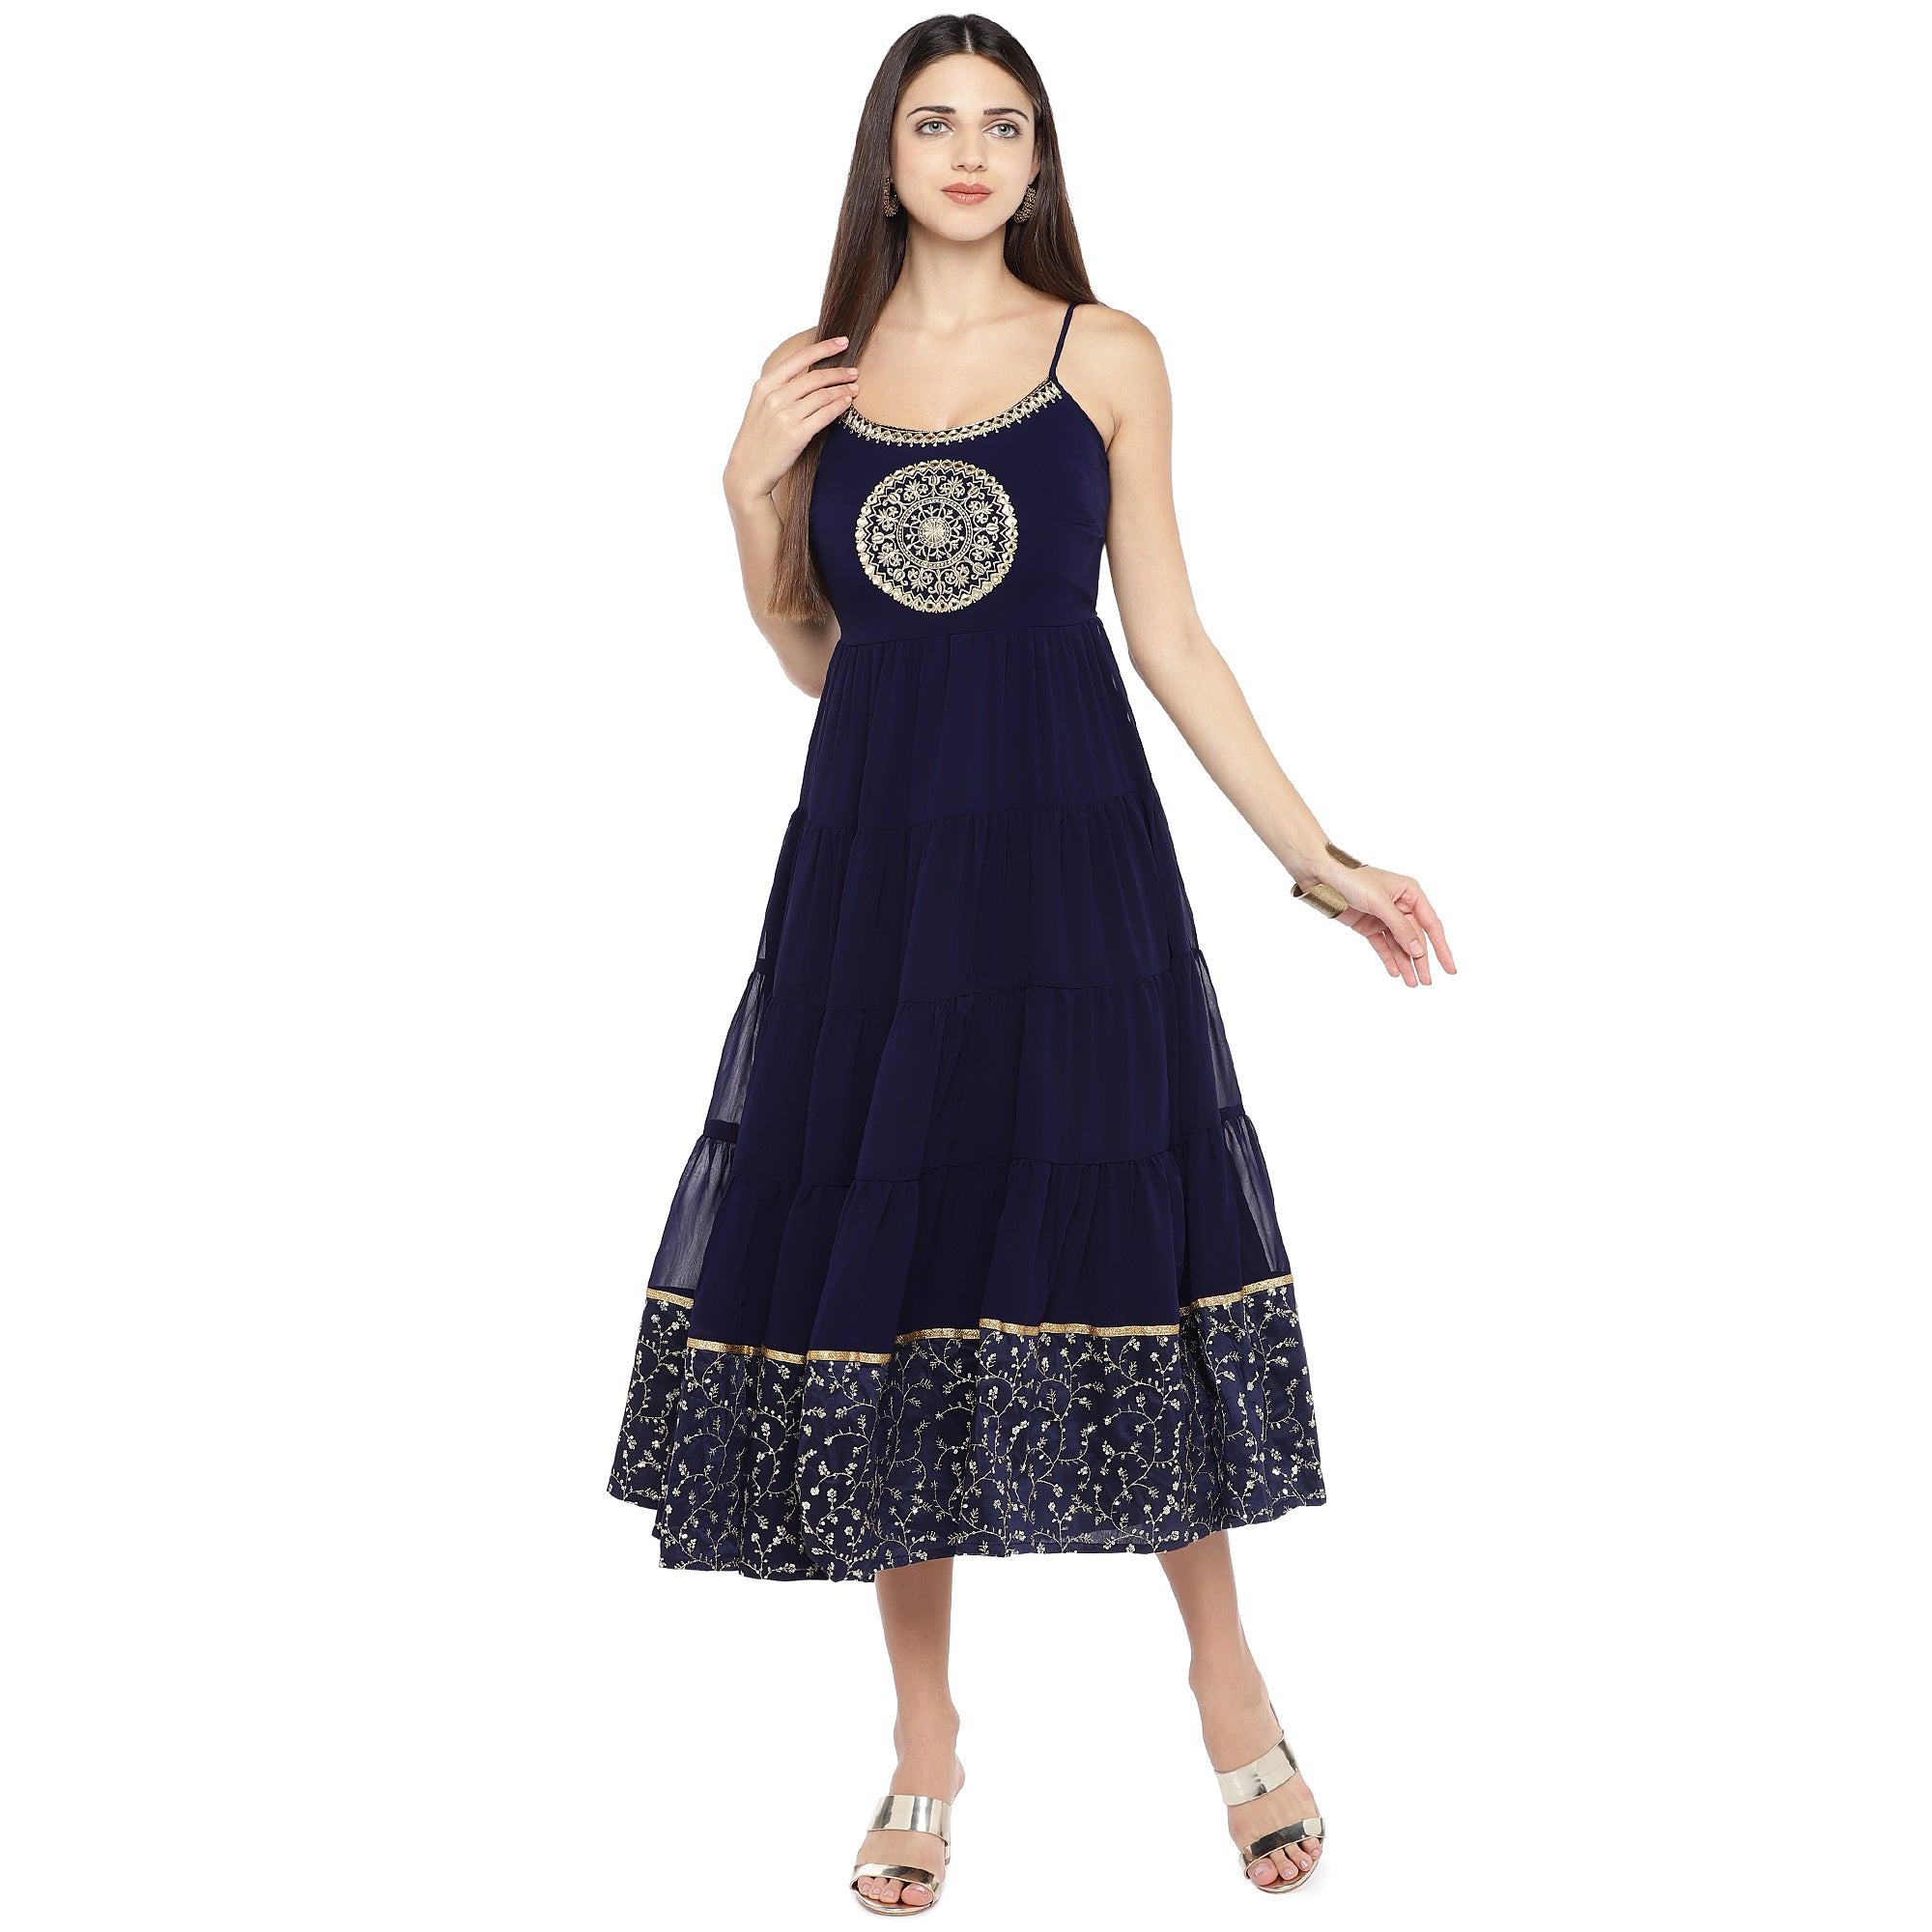 Navy Blue Embroidered Empire Dress-4